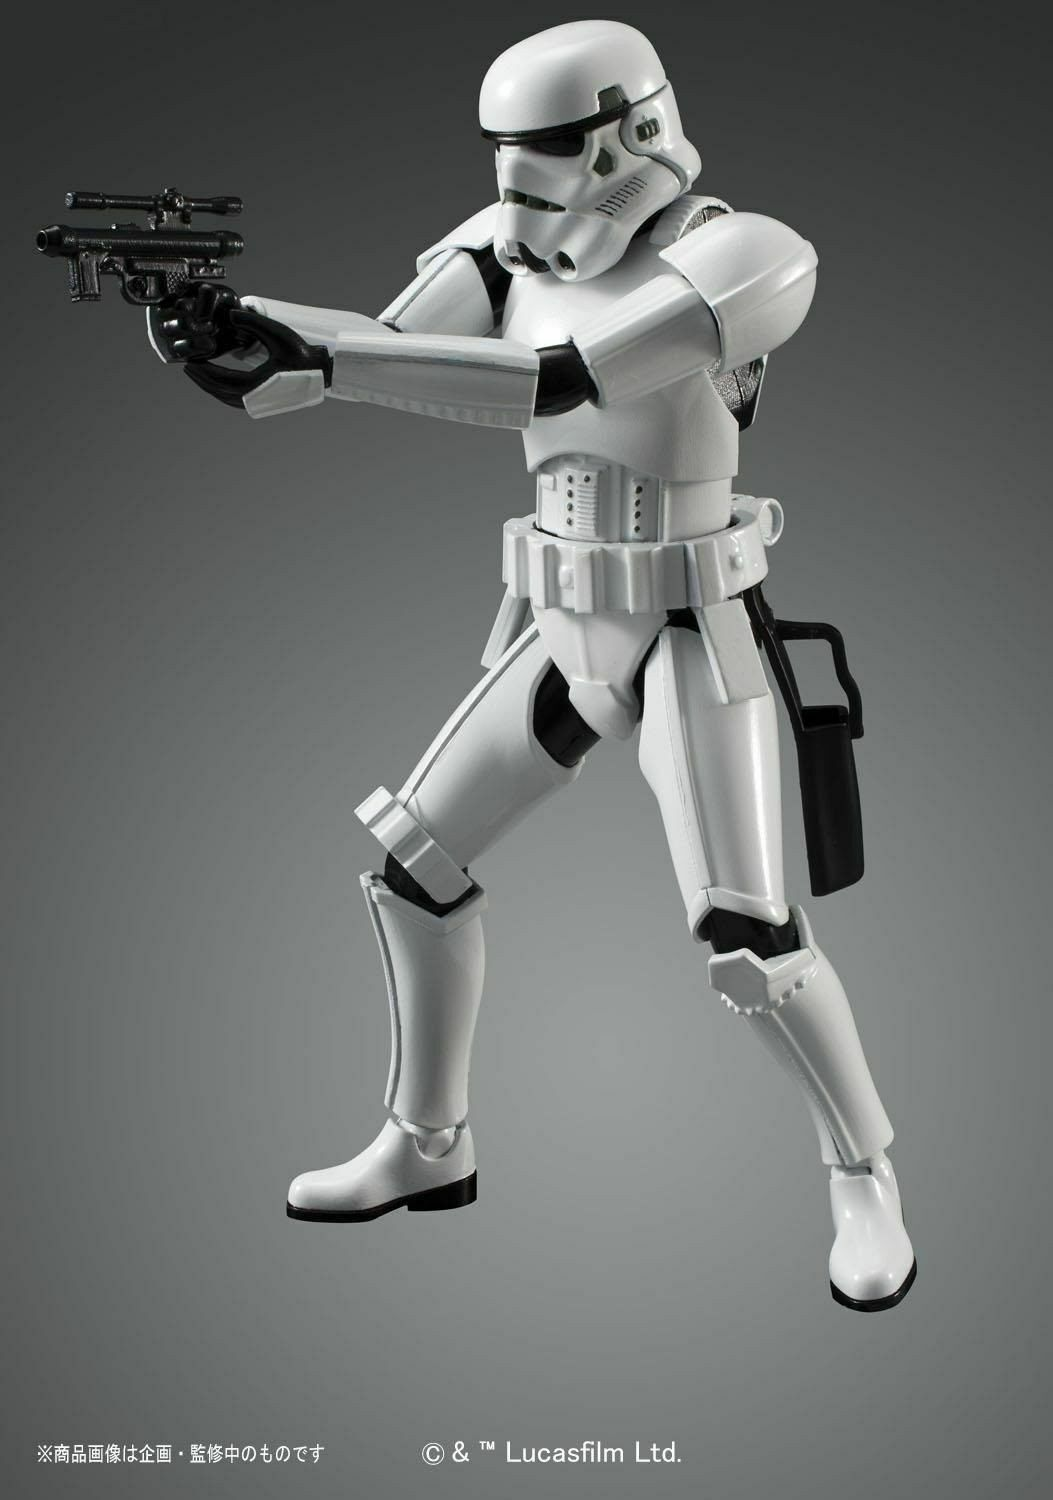 Bandai Hobby Star Wars Stormtrooper 1/12 Scale Model Kit Action Figure